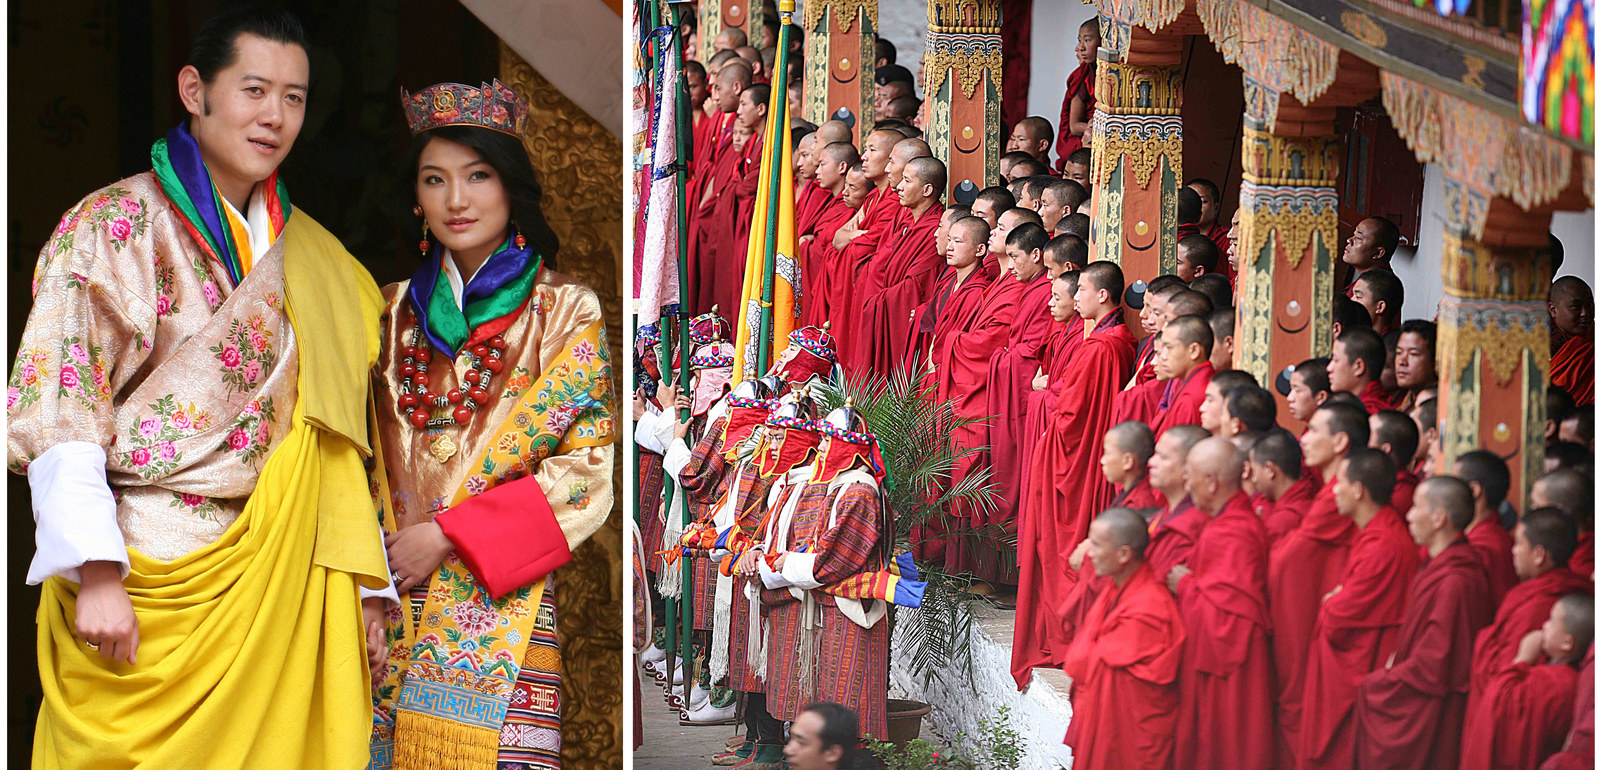 royal wedding in bhutan essay Bhutan had its very own royal wedding on thursday, as the nation's dragon king married an educated commoner 10 years his junior king jigme khesar namgyel wangchuck, 31, and his new bride, queen.